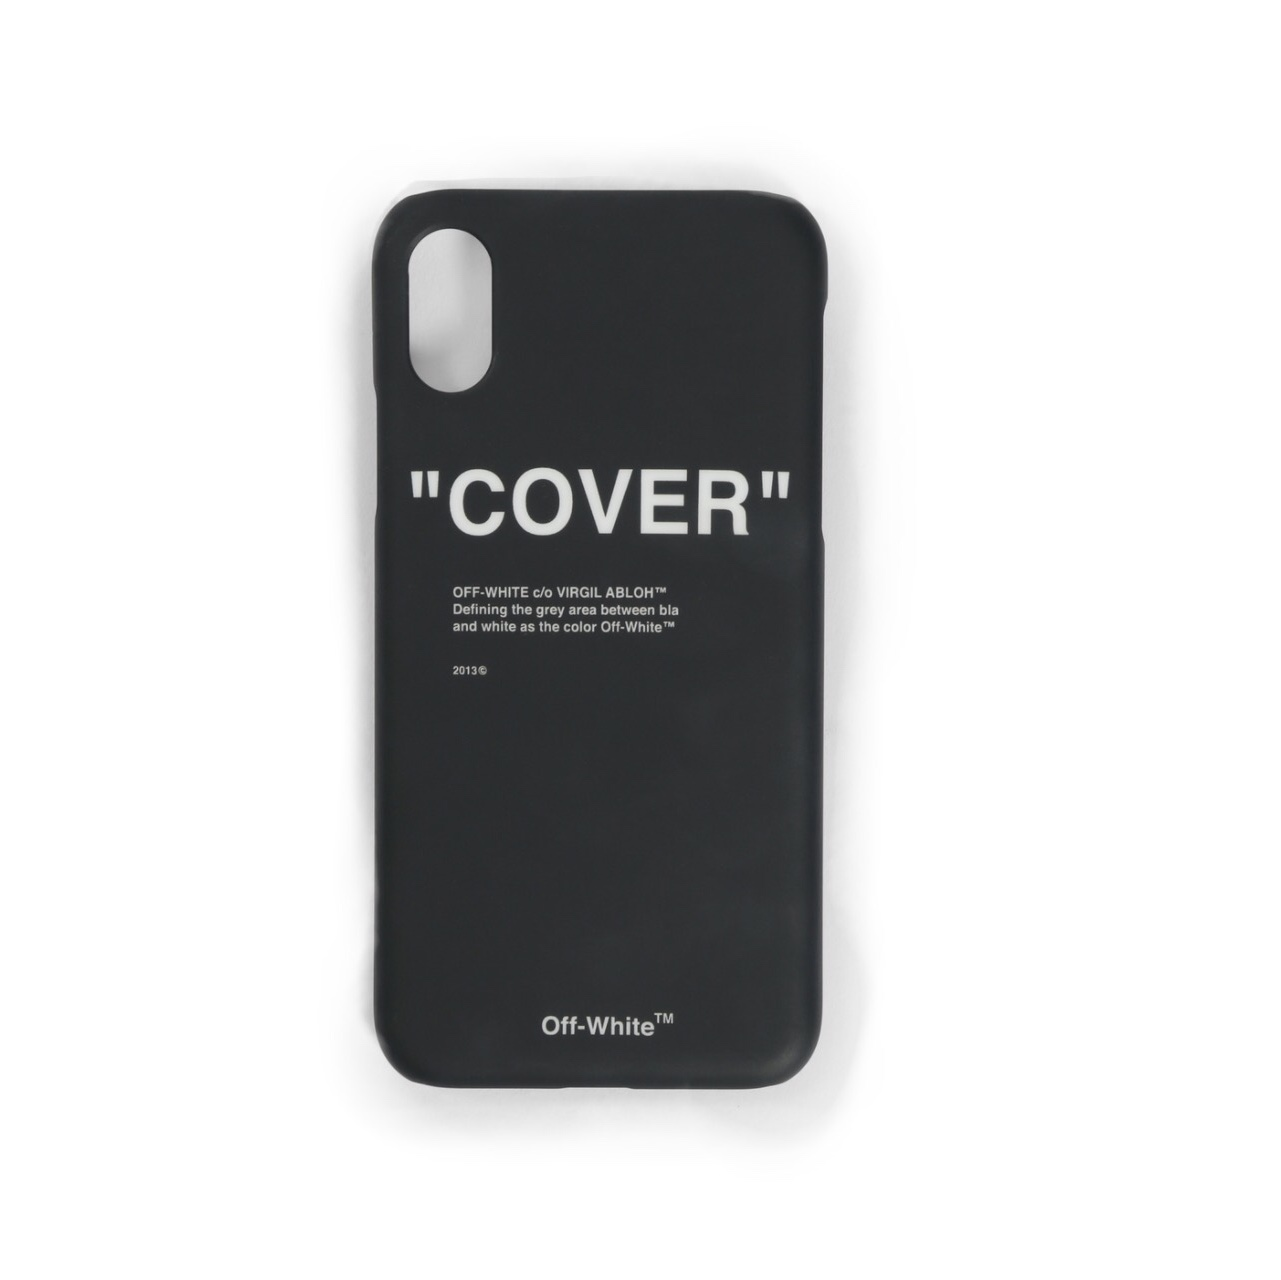 cover iphone 6 off white